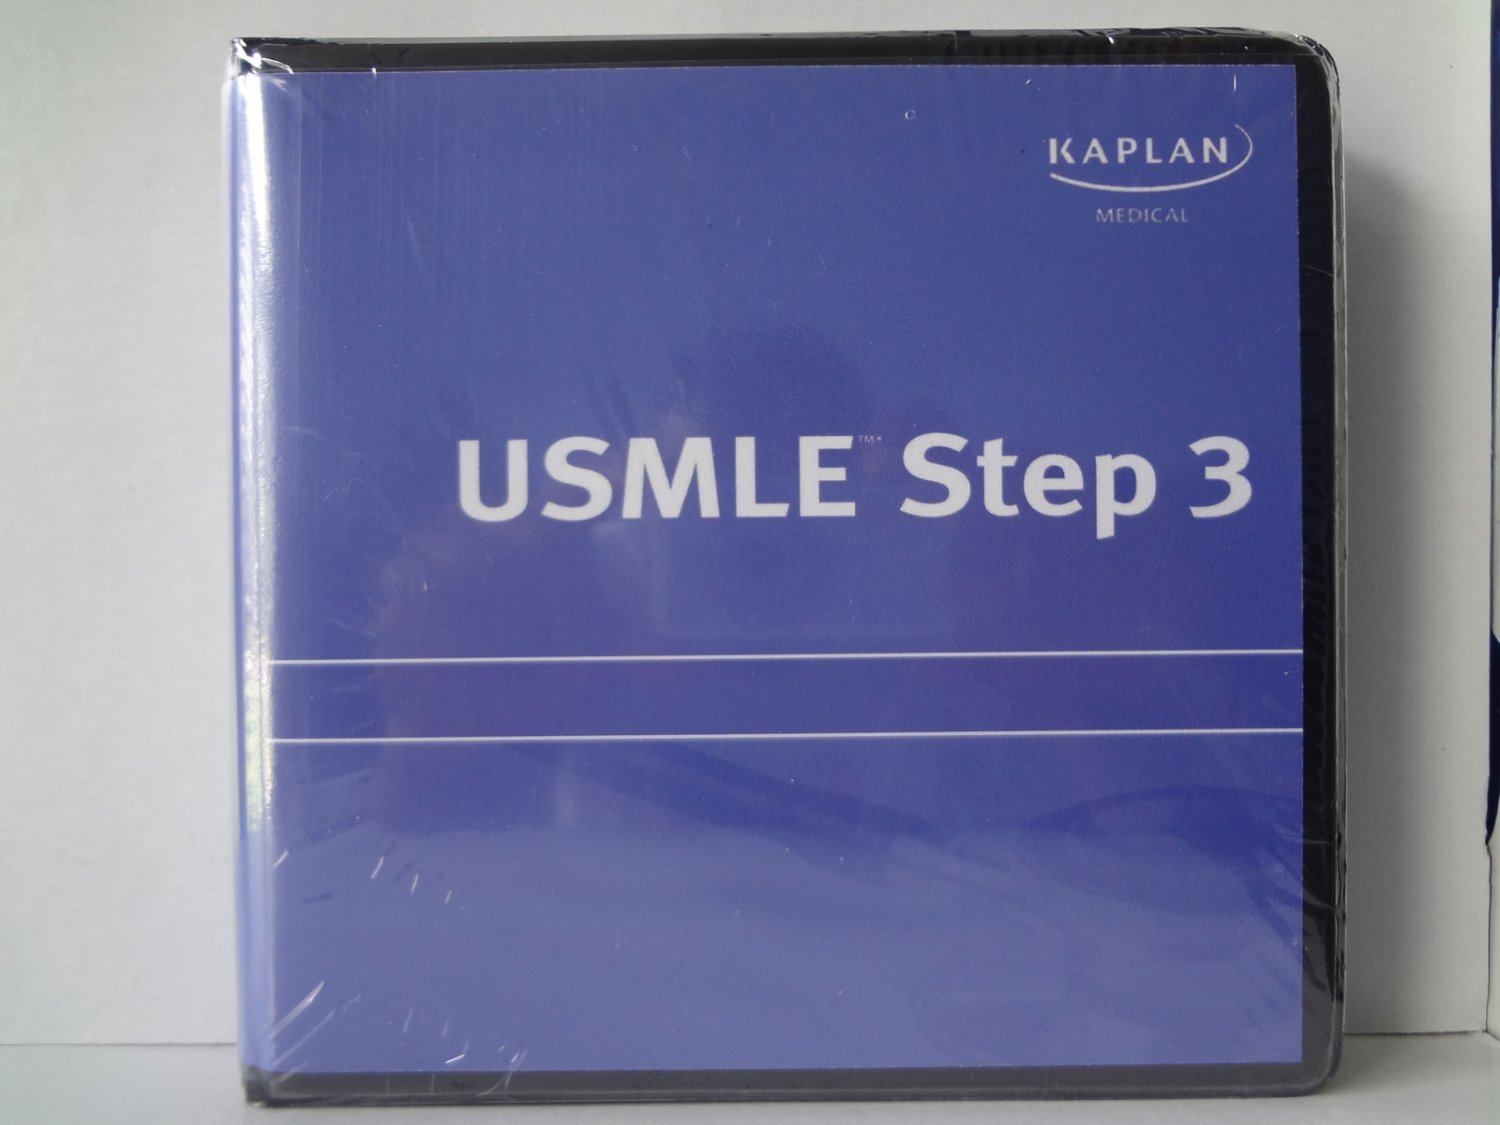 Kaplan High Yield Lectures for USMLE Step 3 DVD